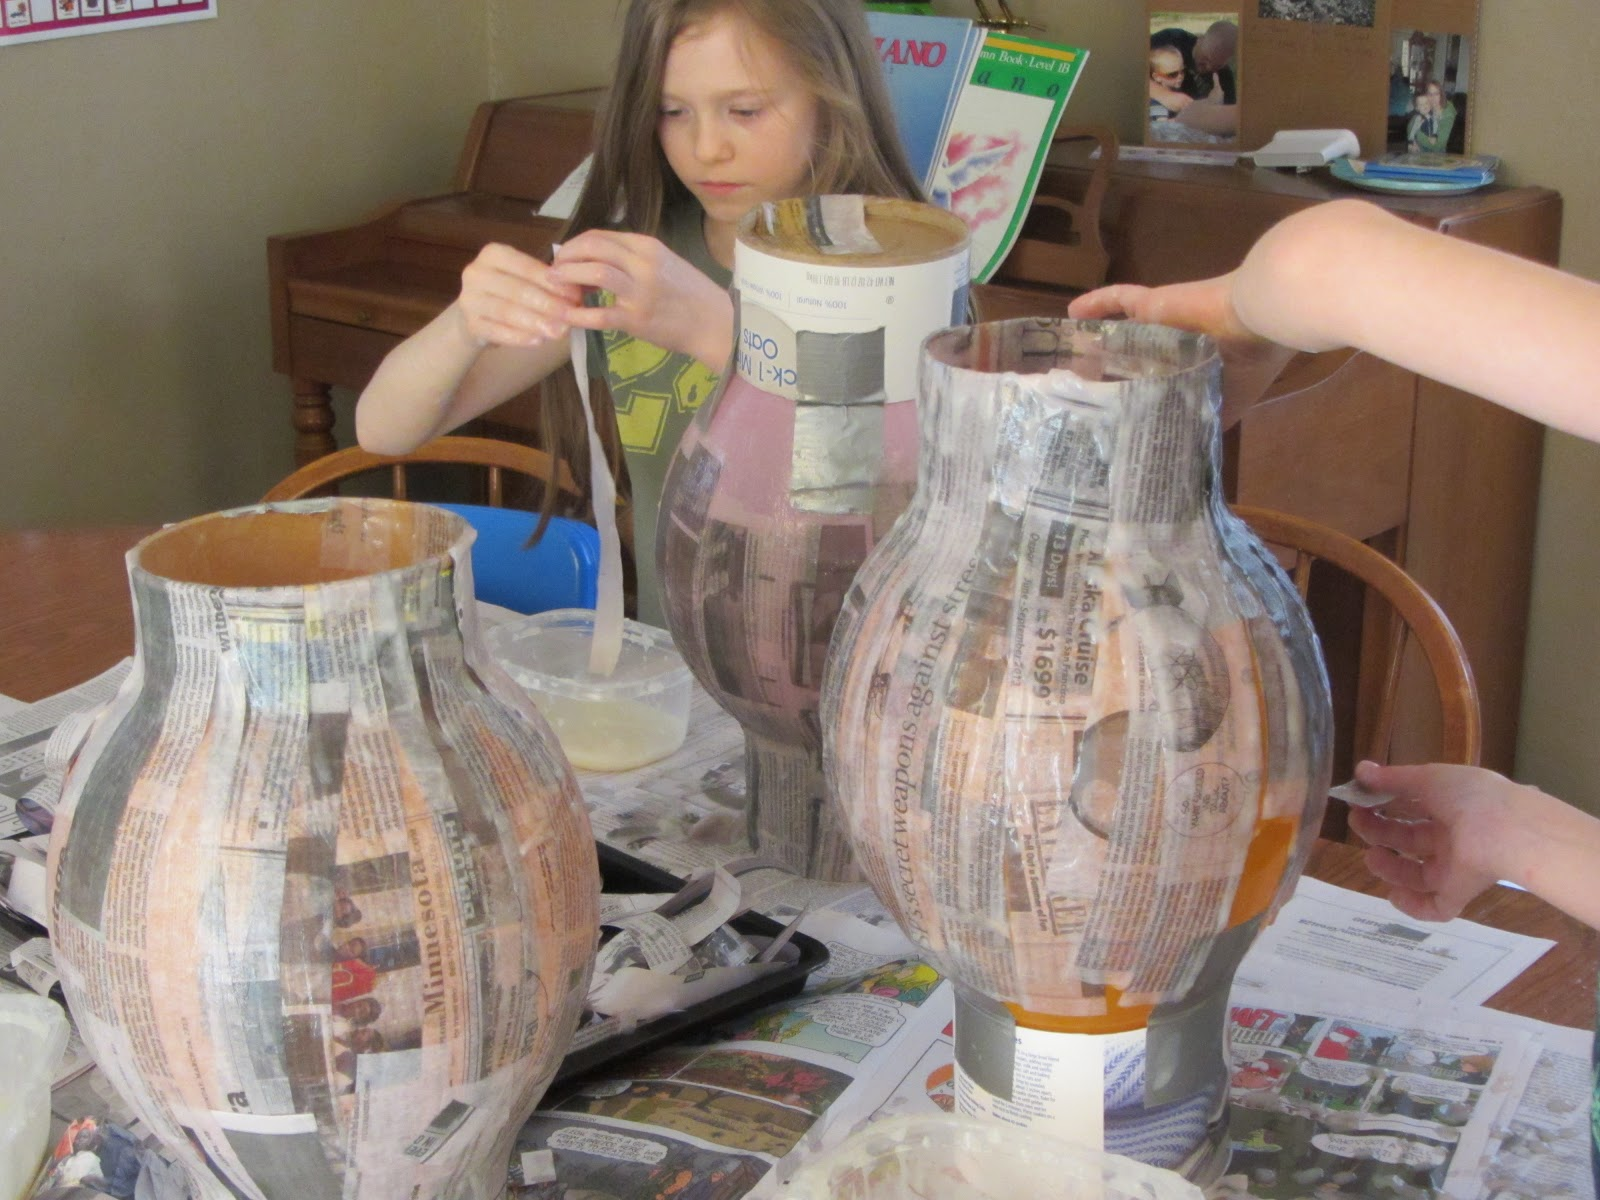 The unlikely homeschool greece unit how to make a grecian urn greece unit how to make a grecian urn the unlikely homeschool reviewsmspy